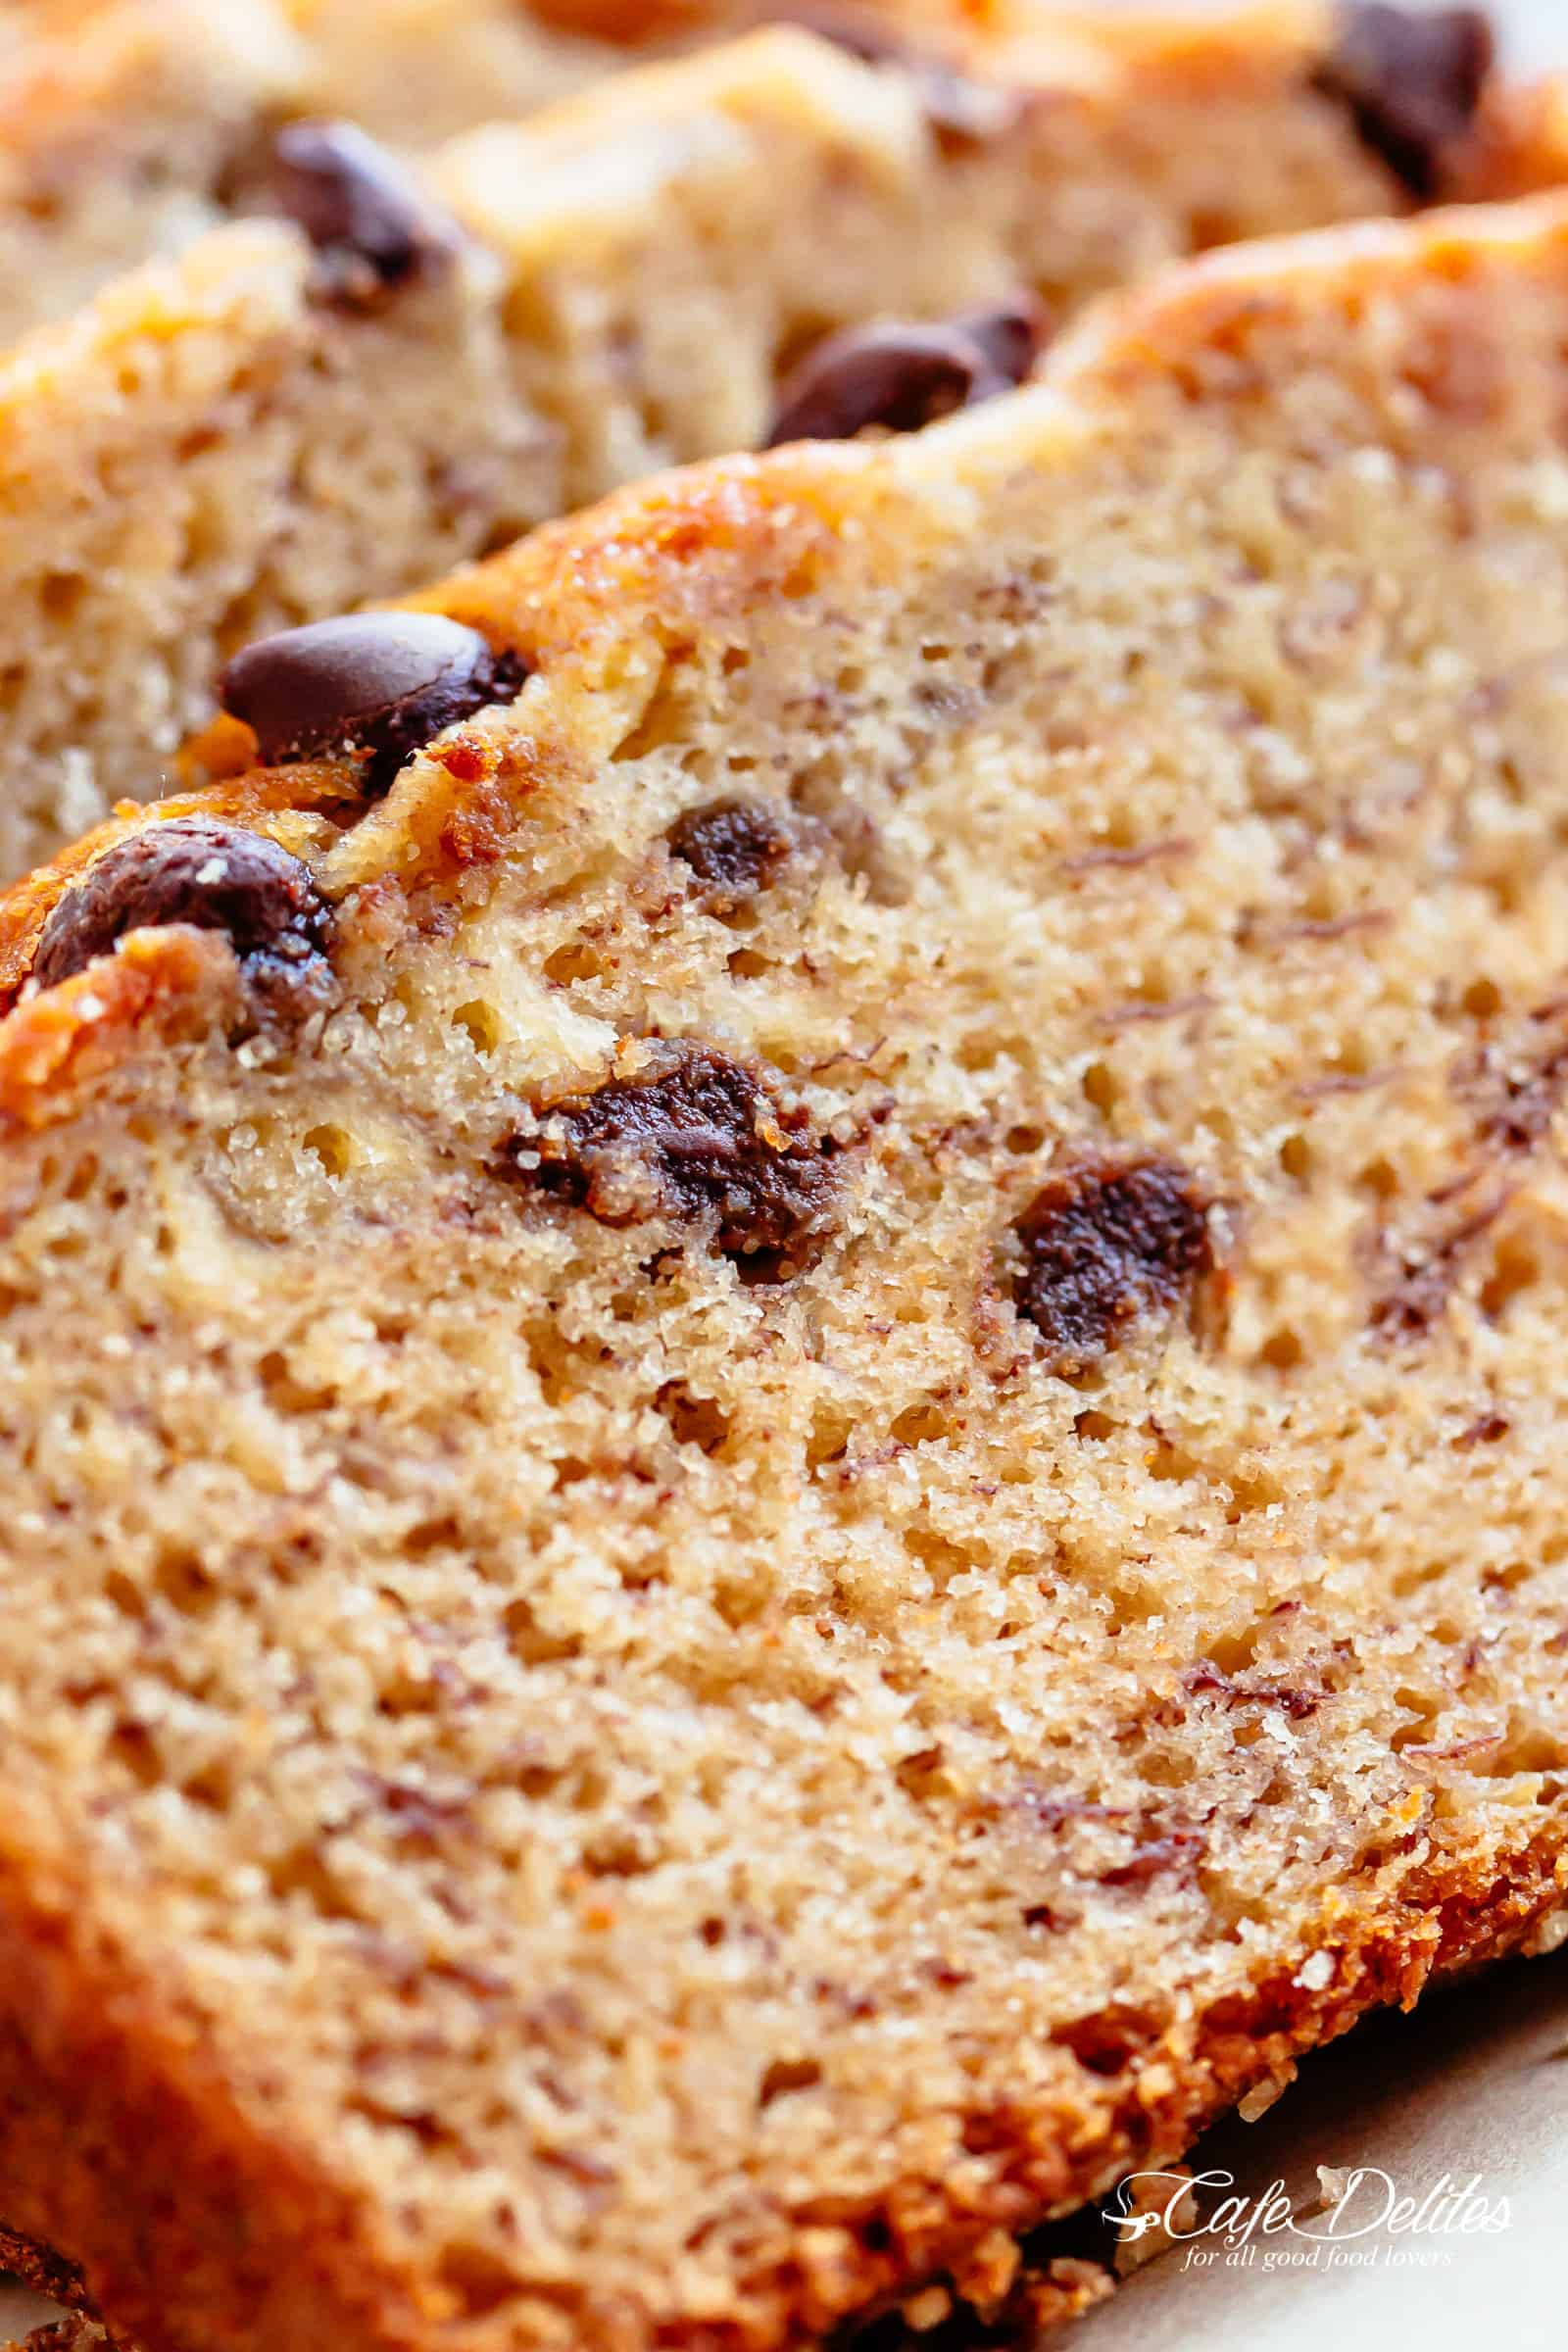 Banana Bread with chocolate chips or nuts | cafedelites.com